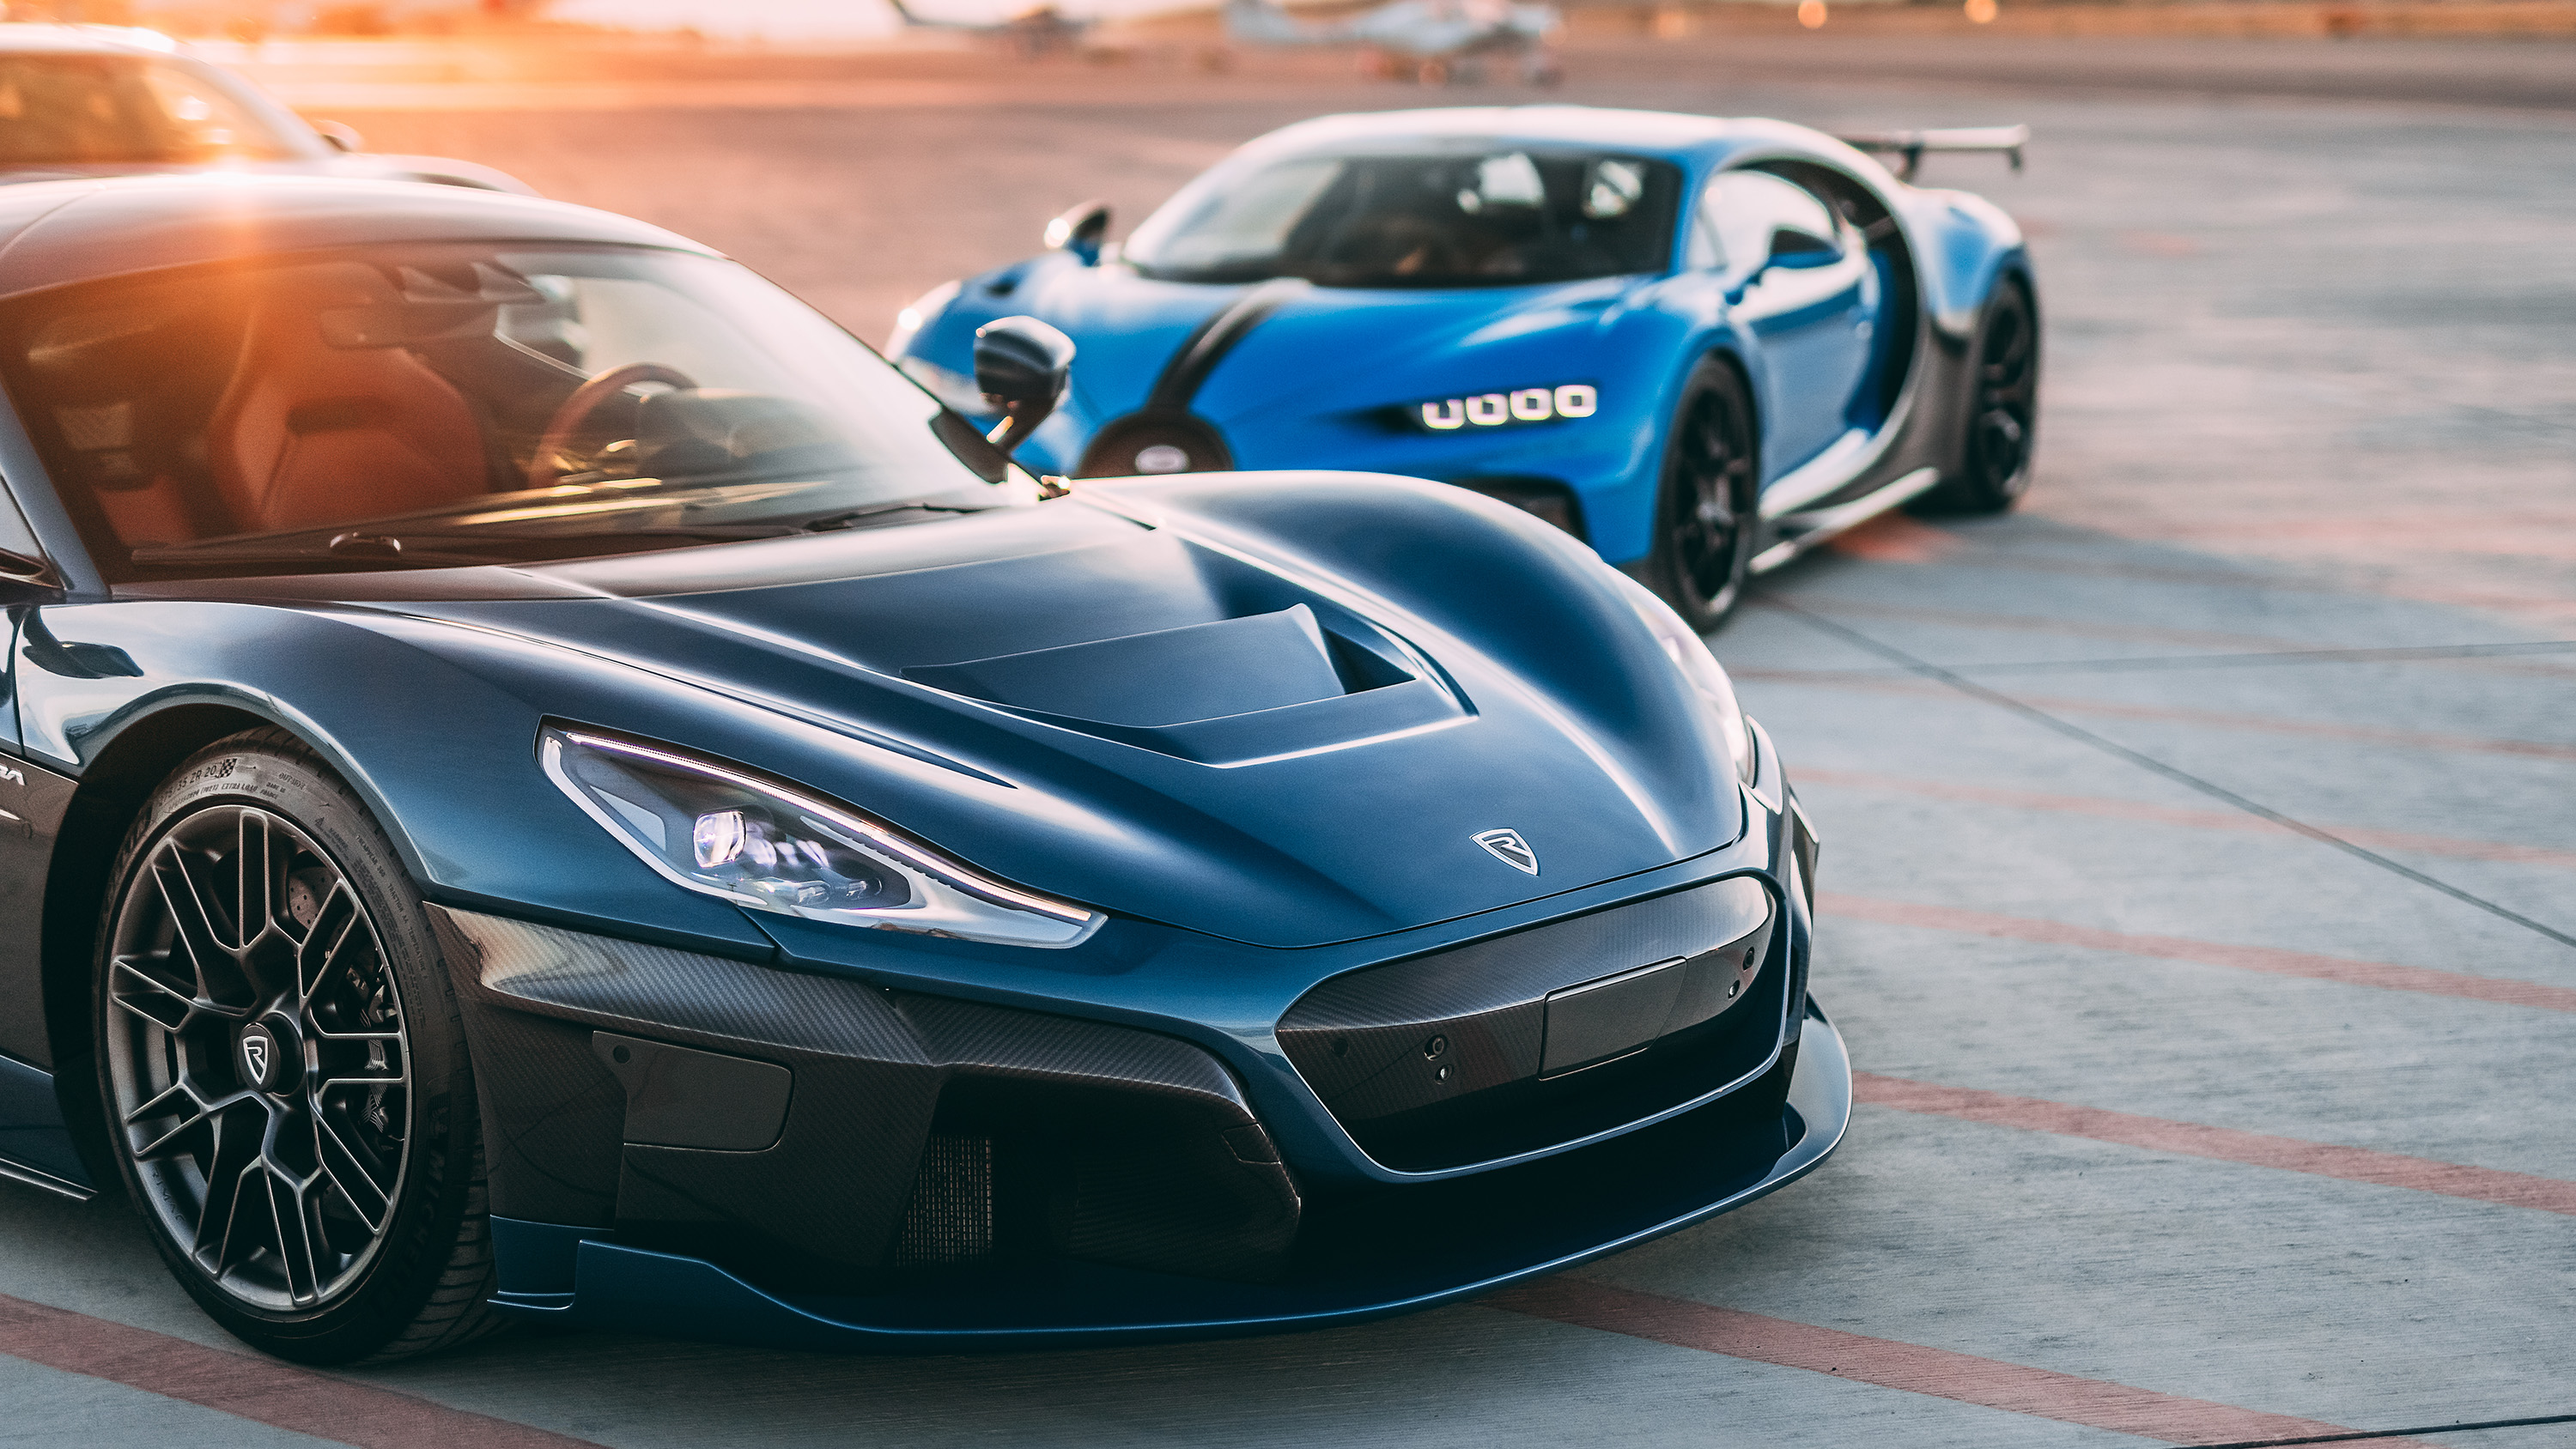 Rimac and Bugatti join forces to make the hypercars of the future